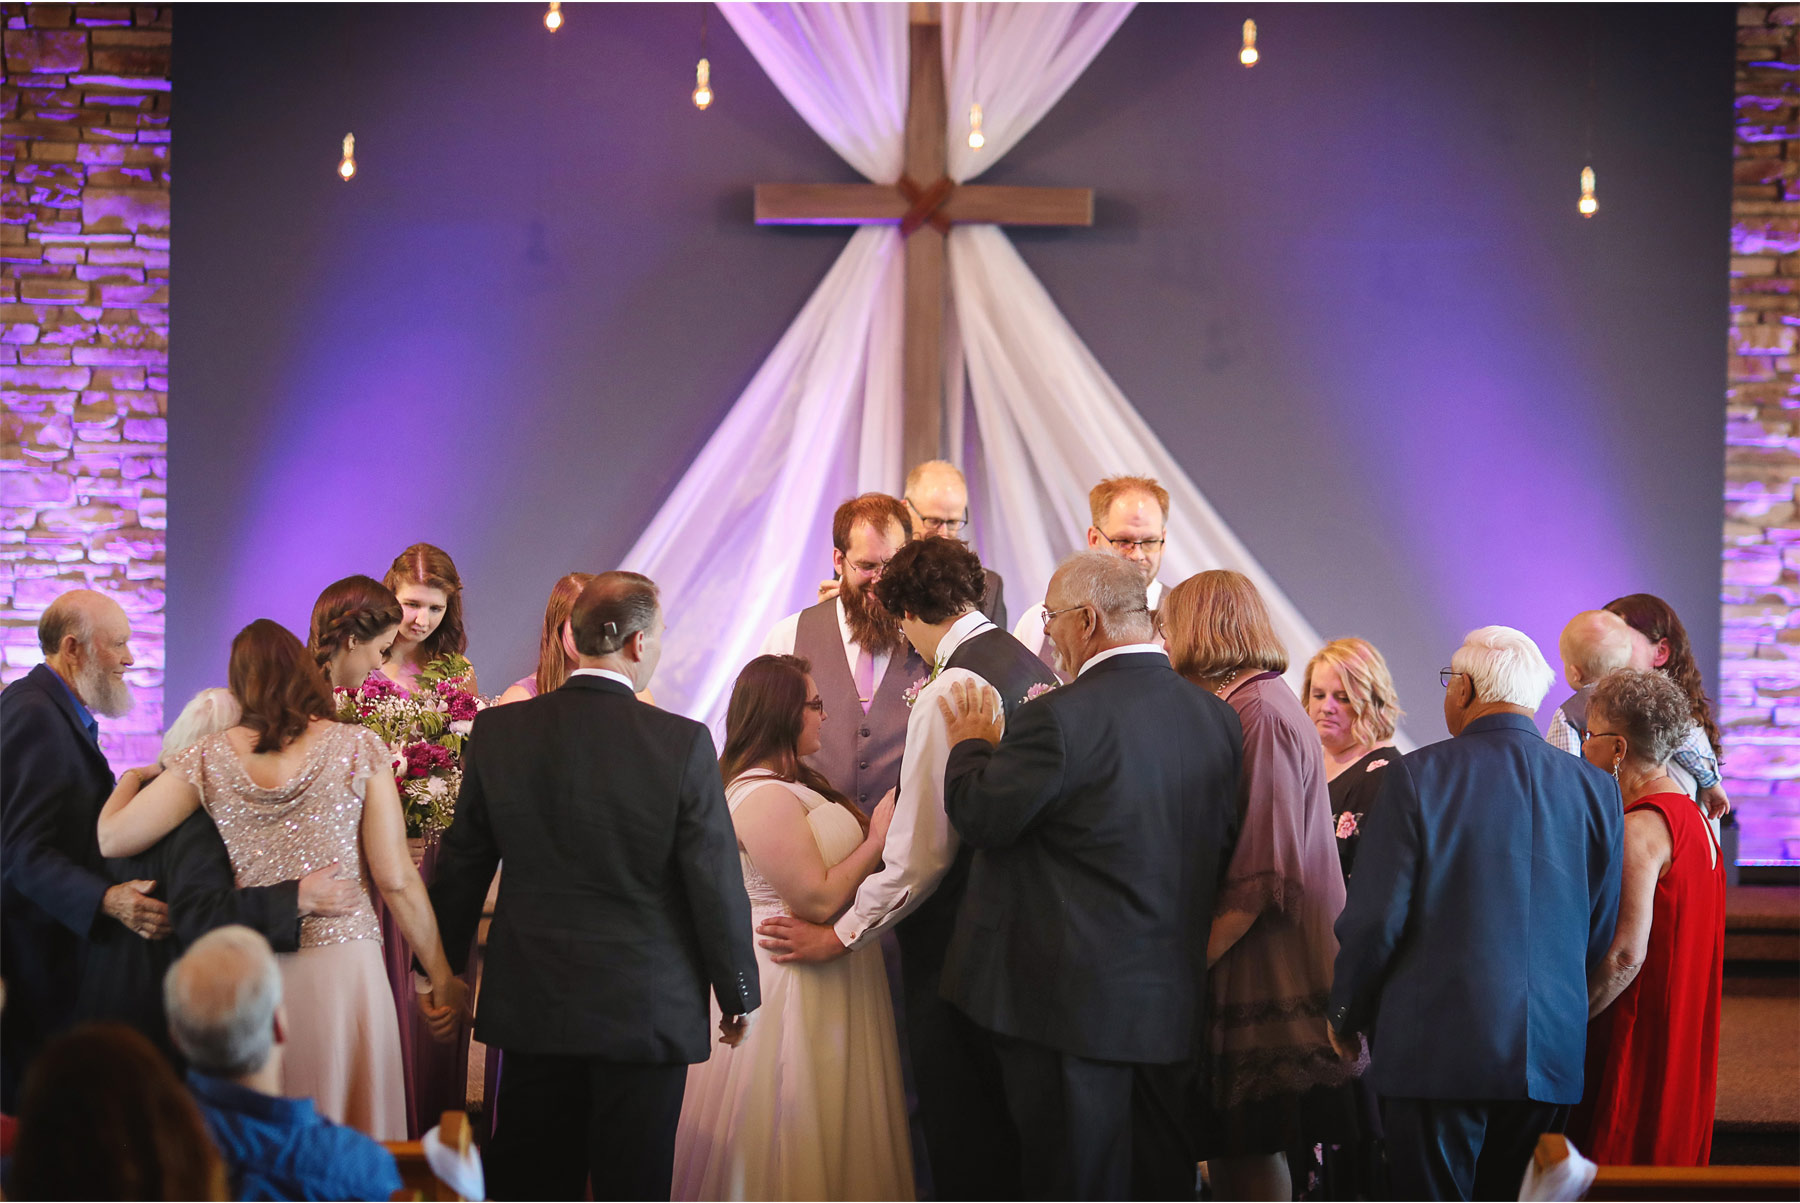 11-Minneapolis-Minnesota-Wedding-Andrew-Vick-Photography-Evergreen-Church-Lakeville-Ceremony-Ashley-and-Matt.jpg